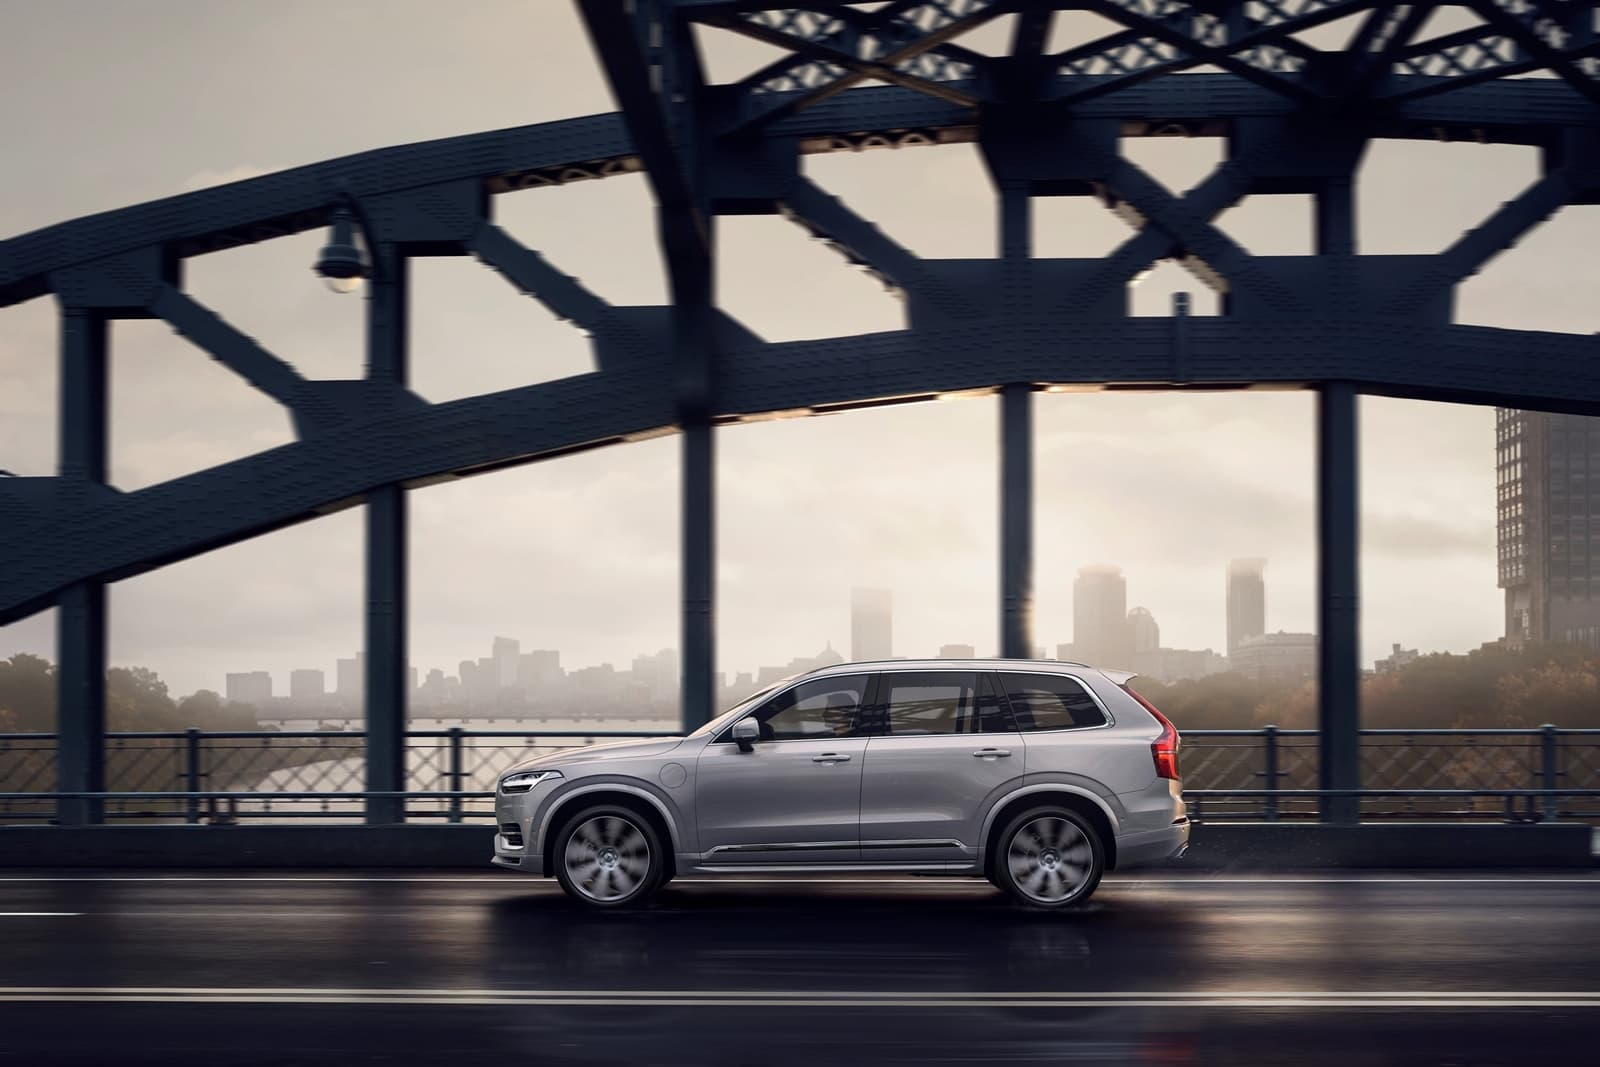 New Volvo Xc90 Inscription T8 Twin Engine In Birch Light Metallic